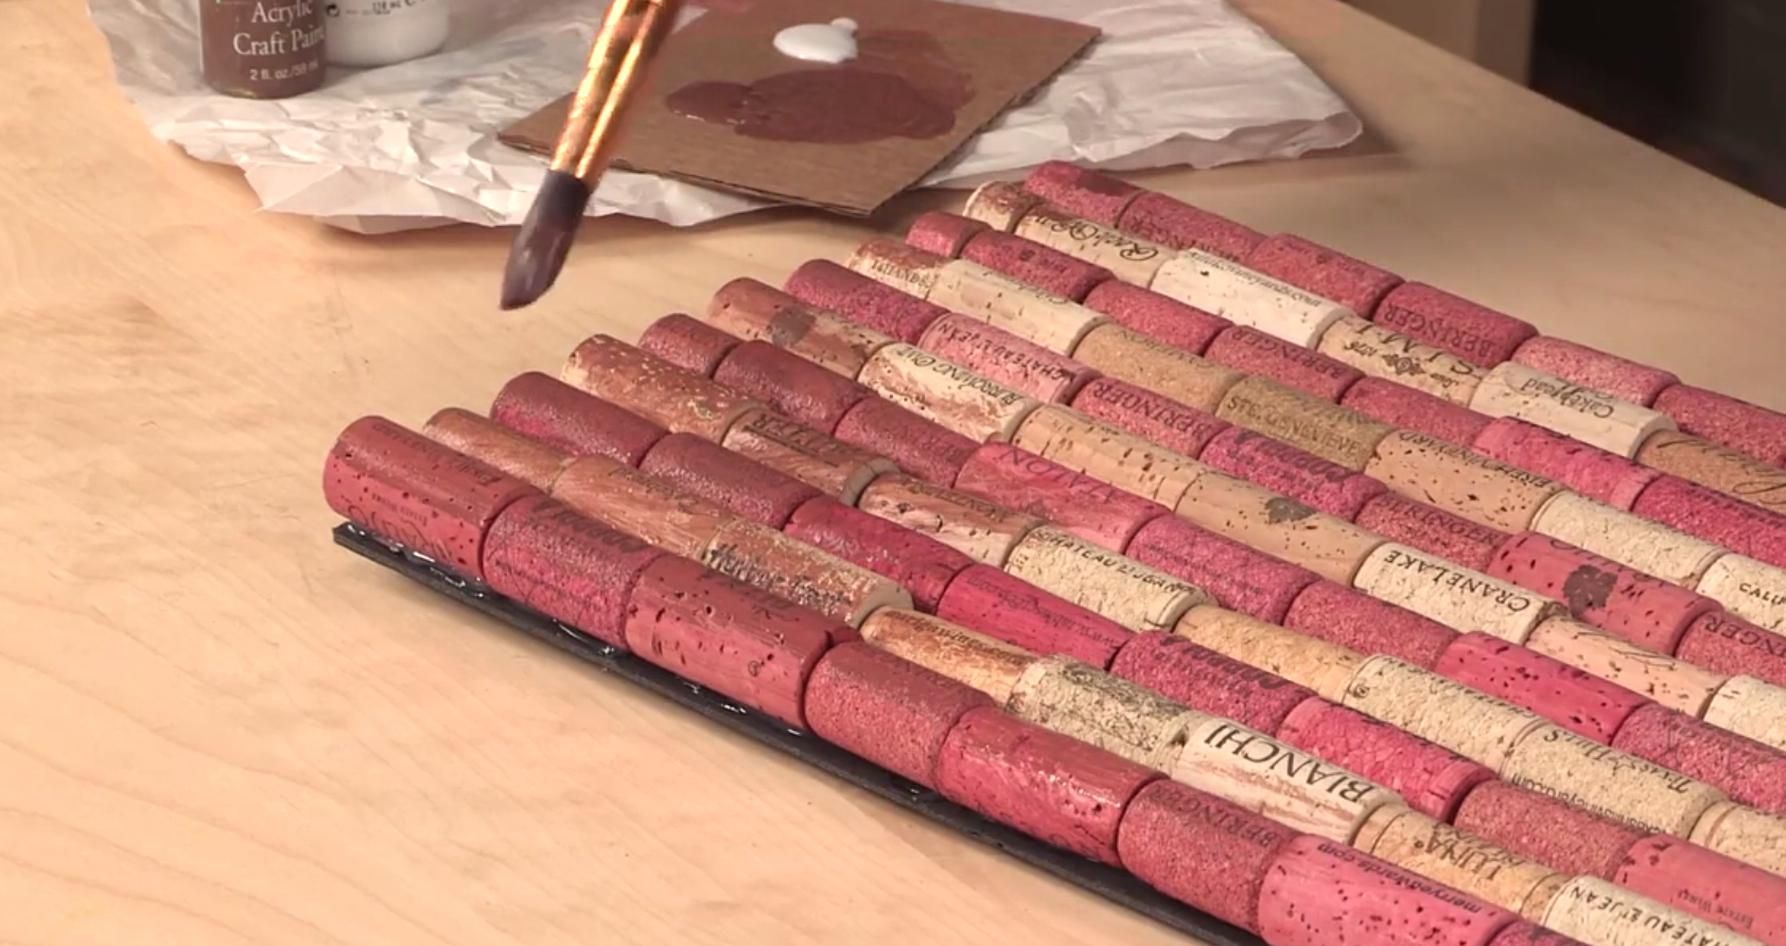 Wine Cork R Just Need To Make A K Wine Cork Art Cork Art Wine Cork